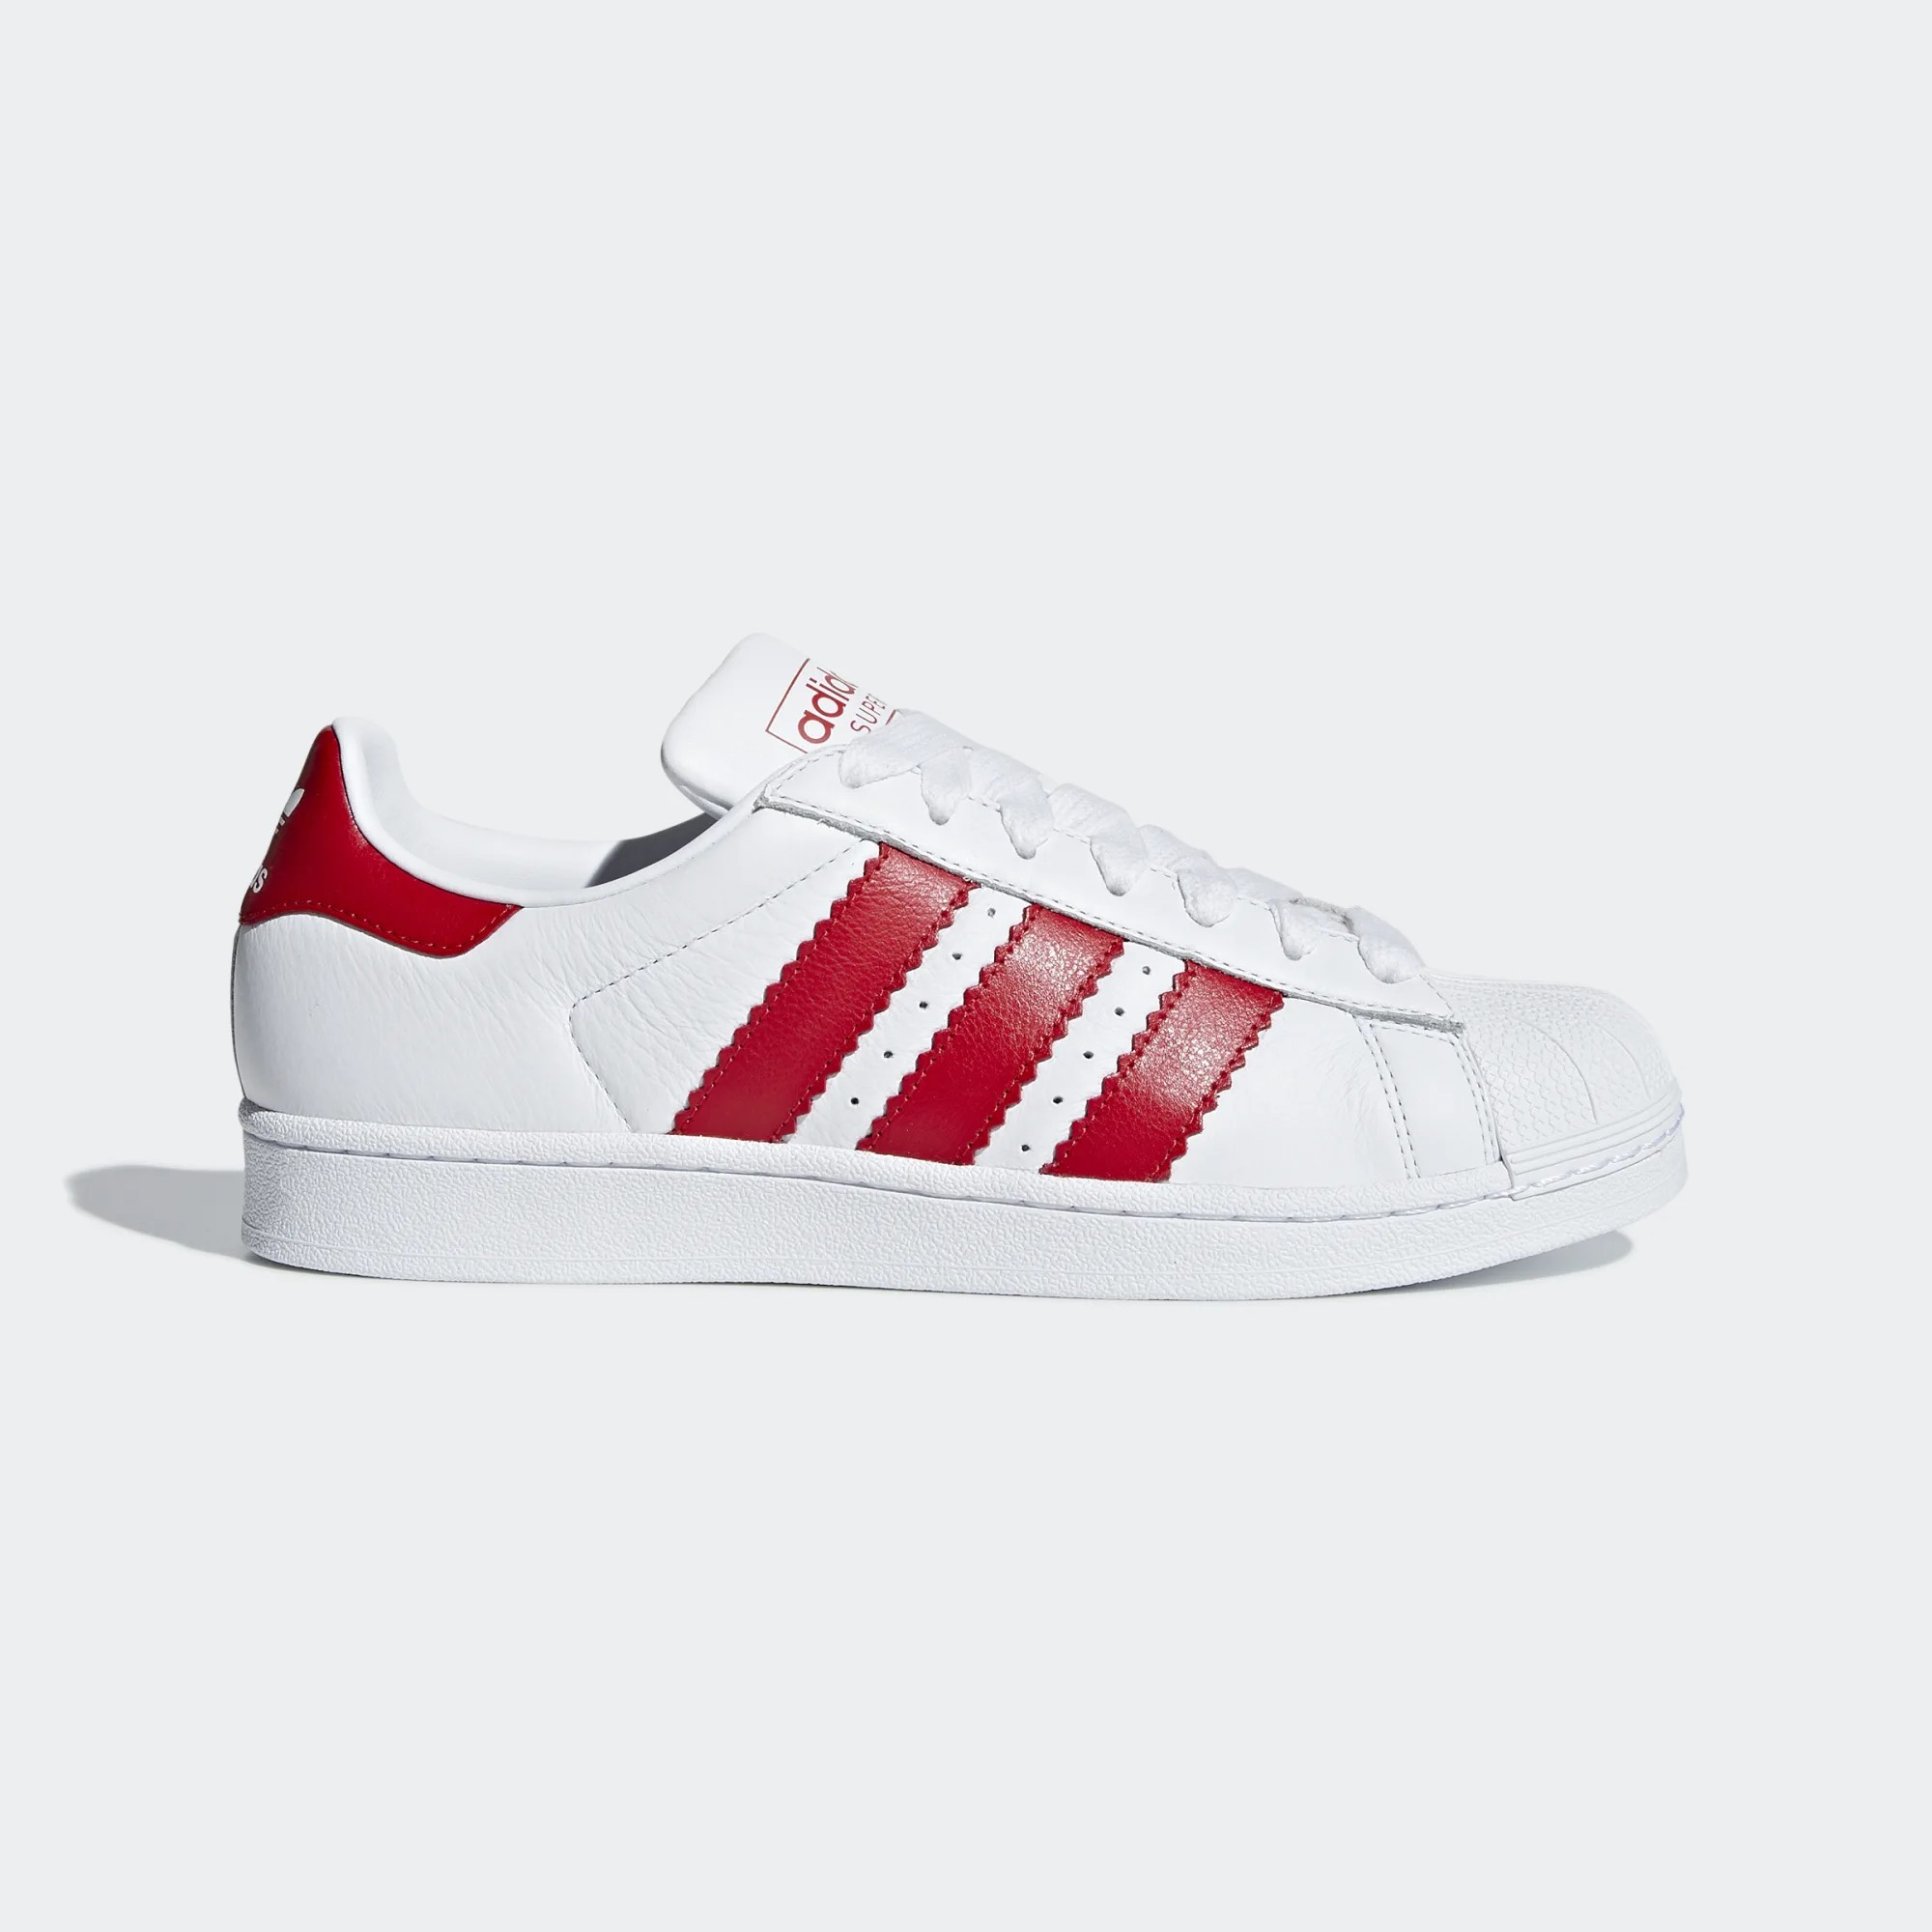 Adidas Originals Superstar White/Scarlet/White BD7370